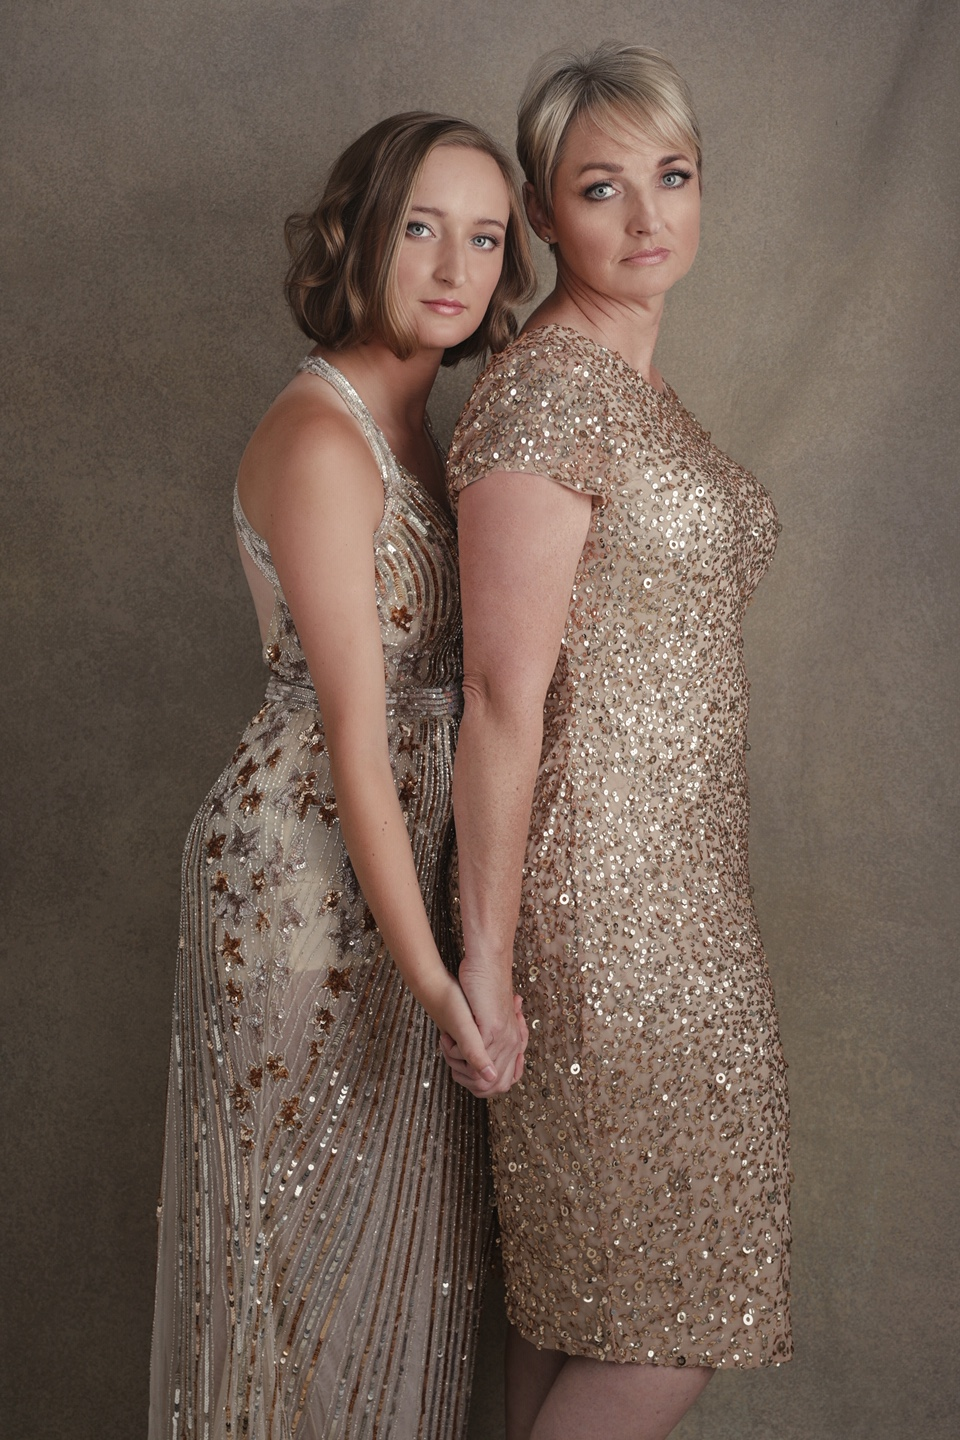 mother daughter photo shoot - legacy - heirloom photos - families